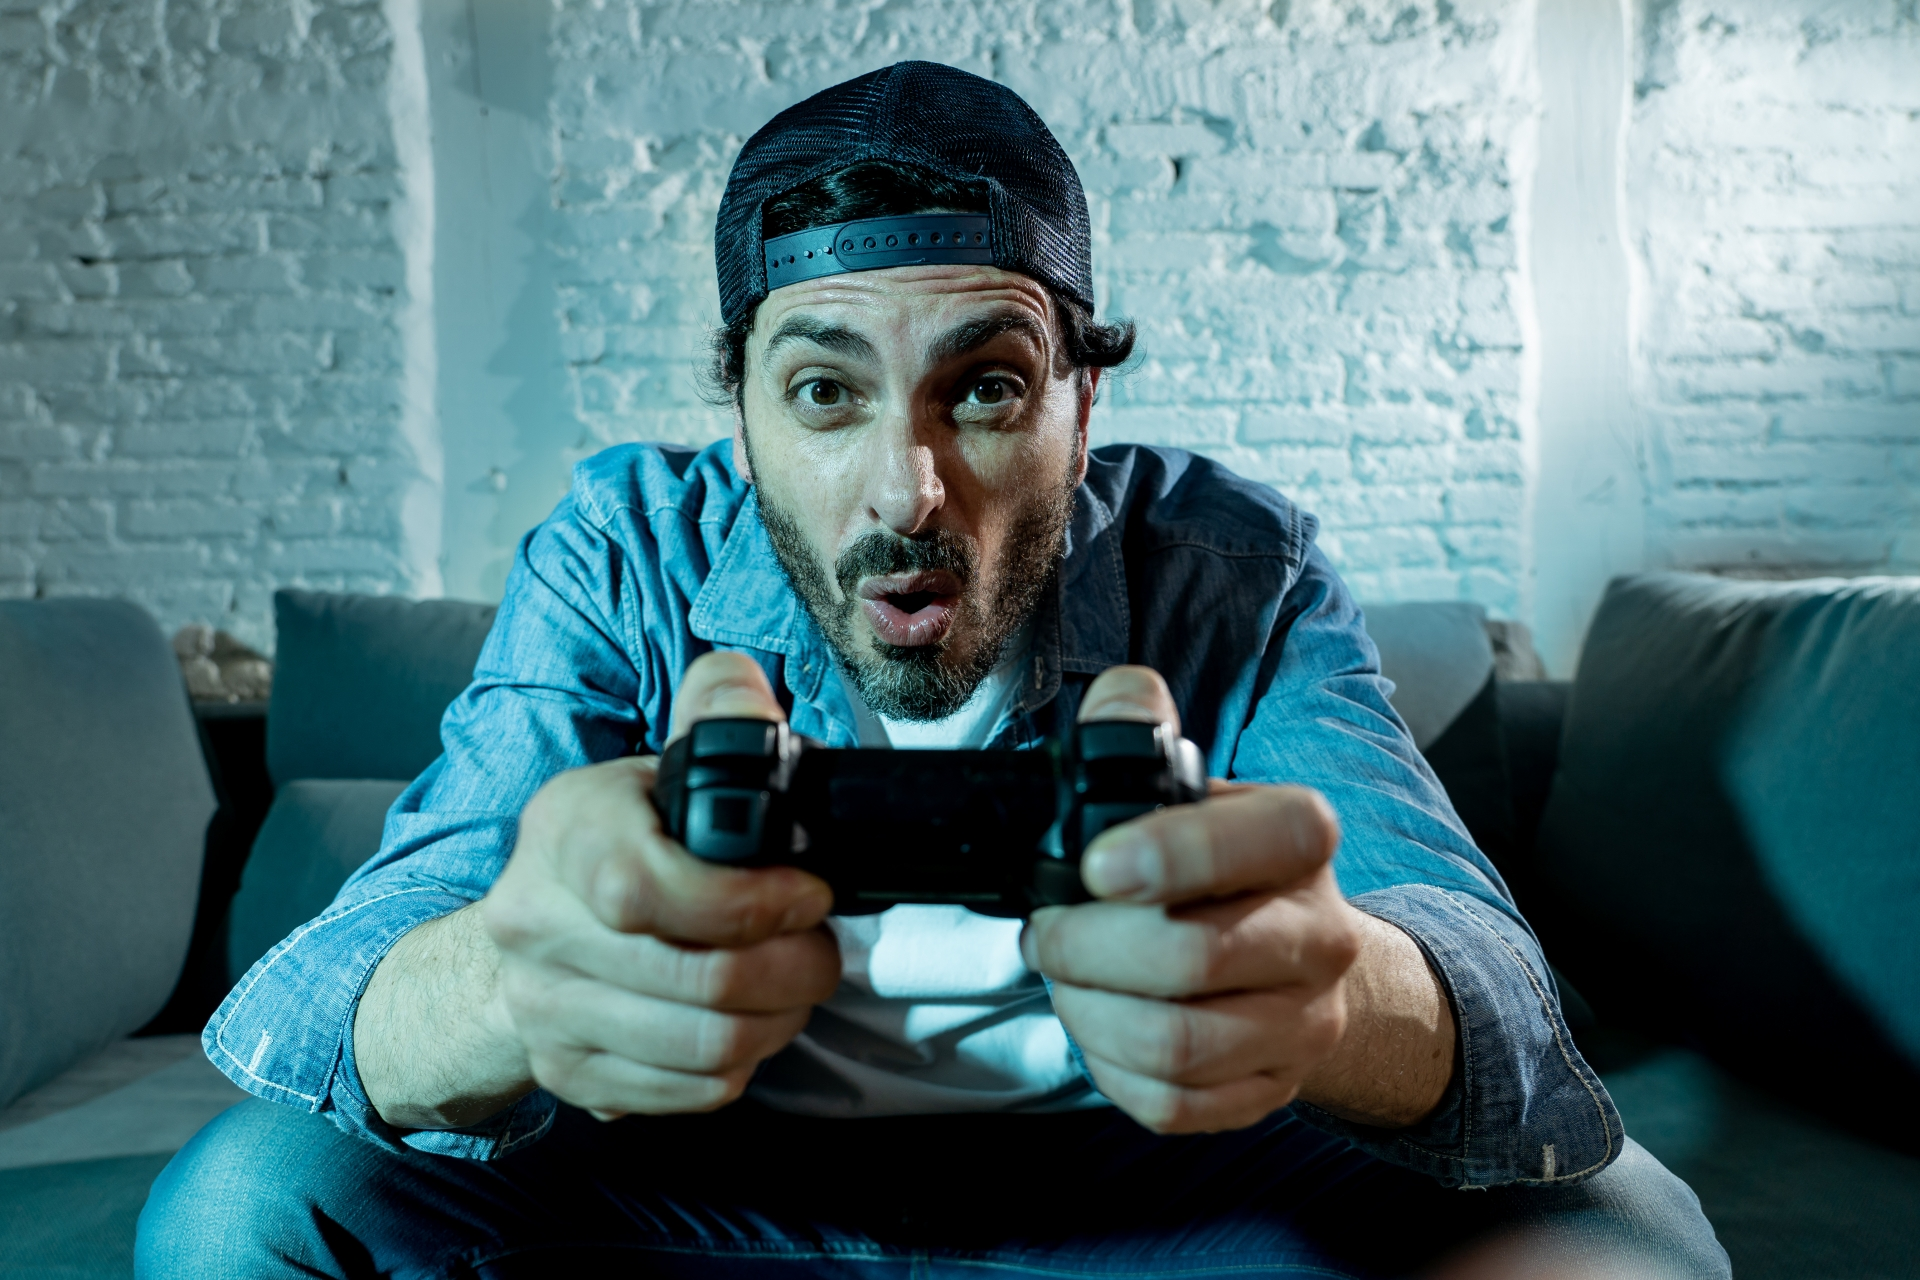 HYPE or REALITY? The demise of guys: Stanford professor claims video games and online porn will lead to the extinction of men - Free Teens Youth - Changing Minds, Transforming Lives